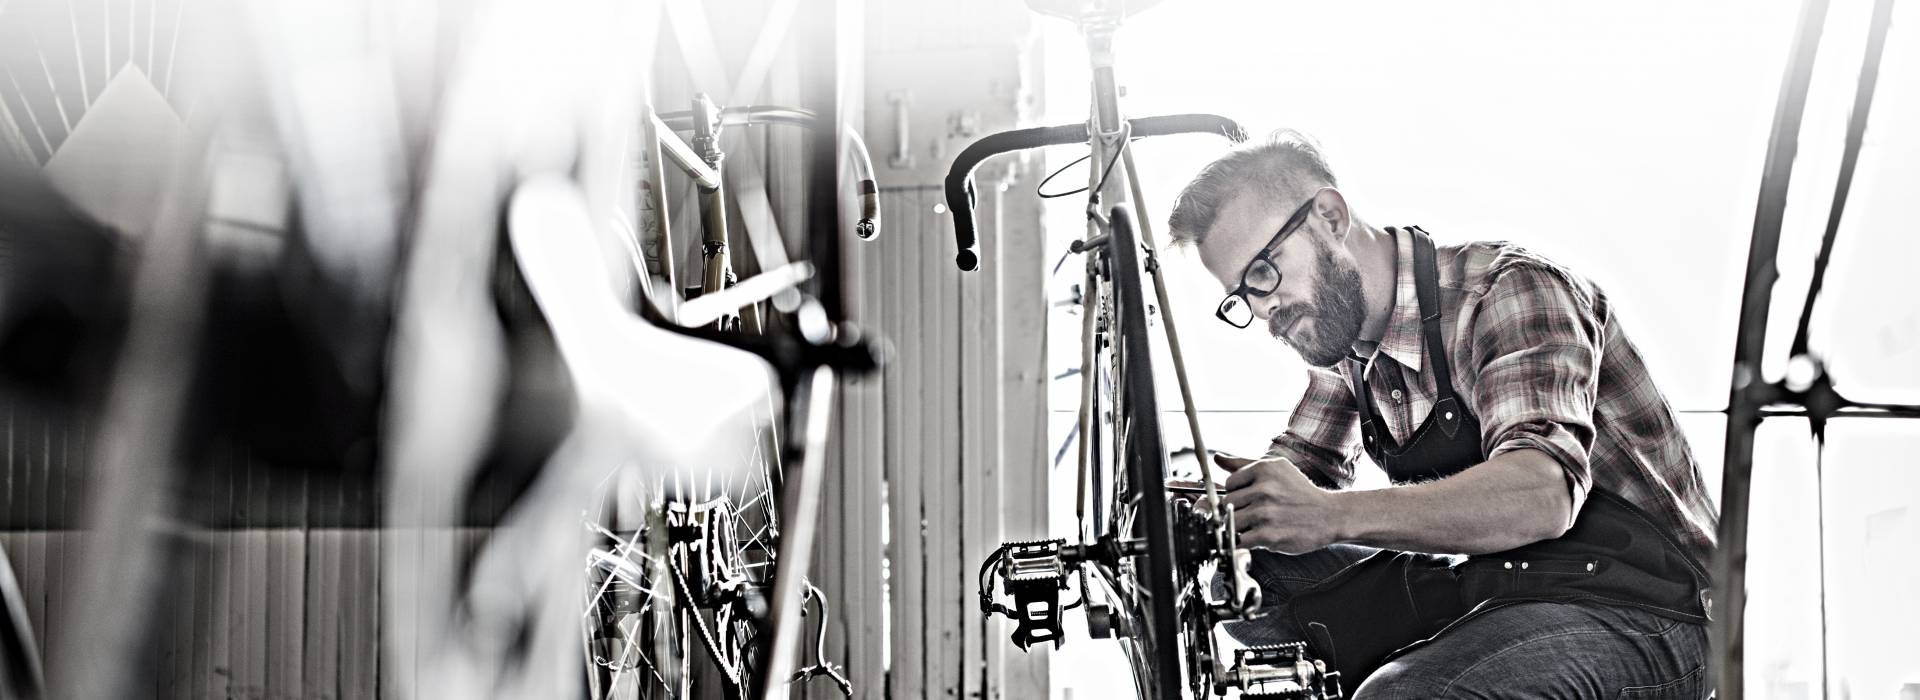 A small business owner fixes a bicycle in his bike shop.